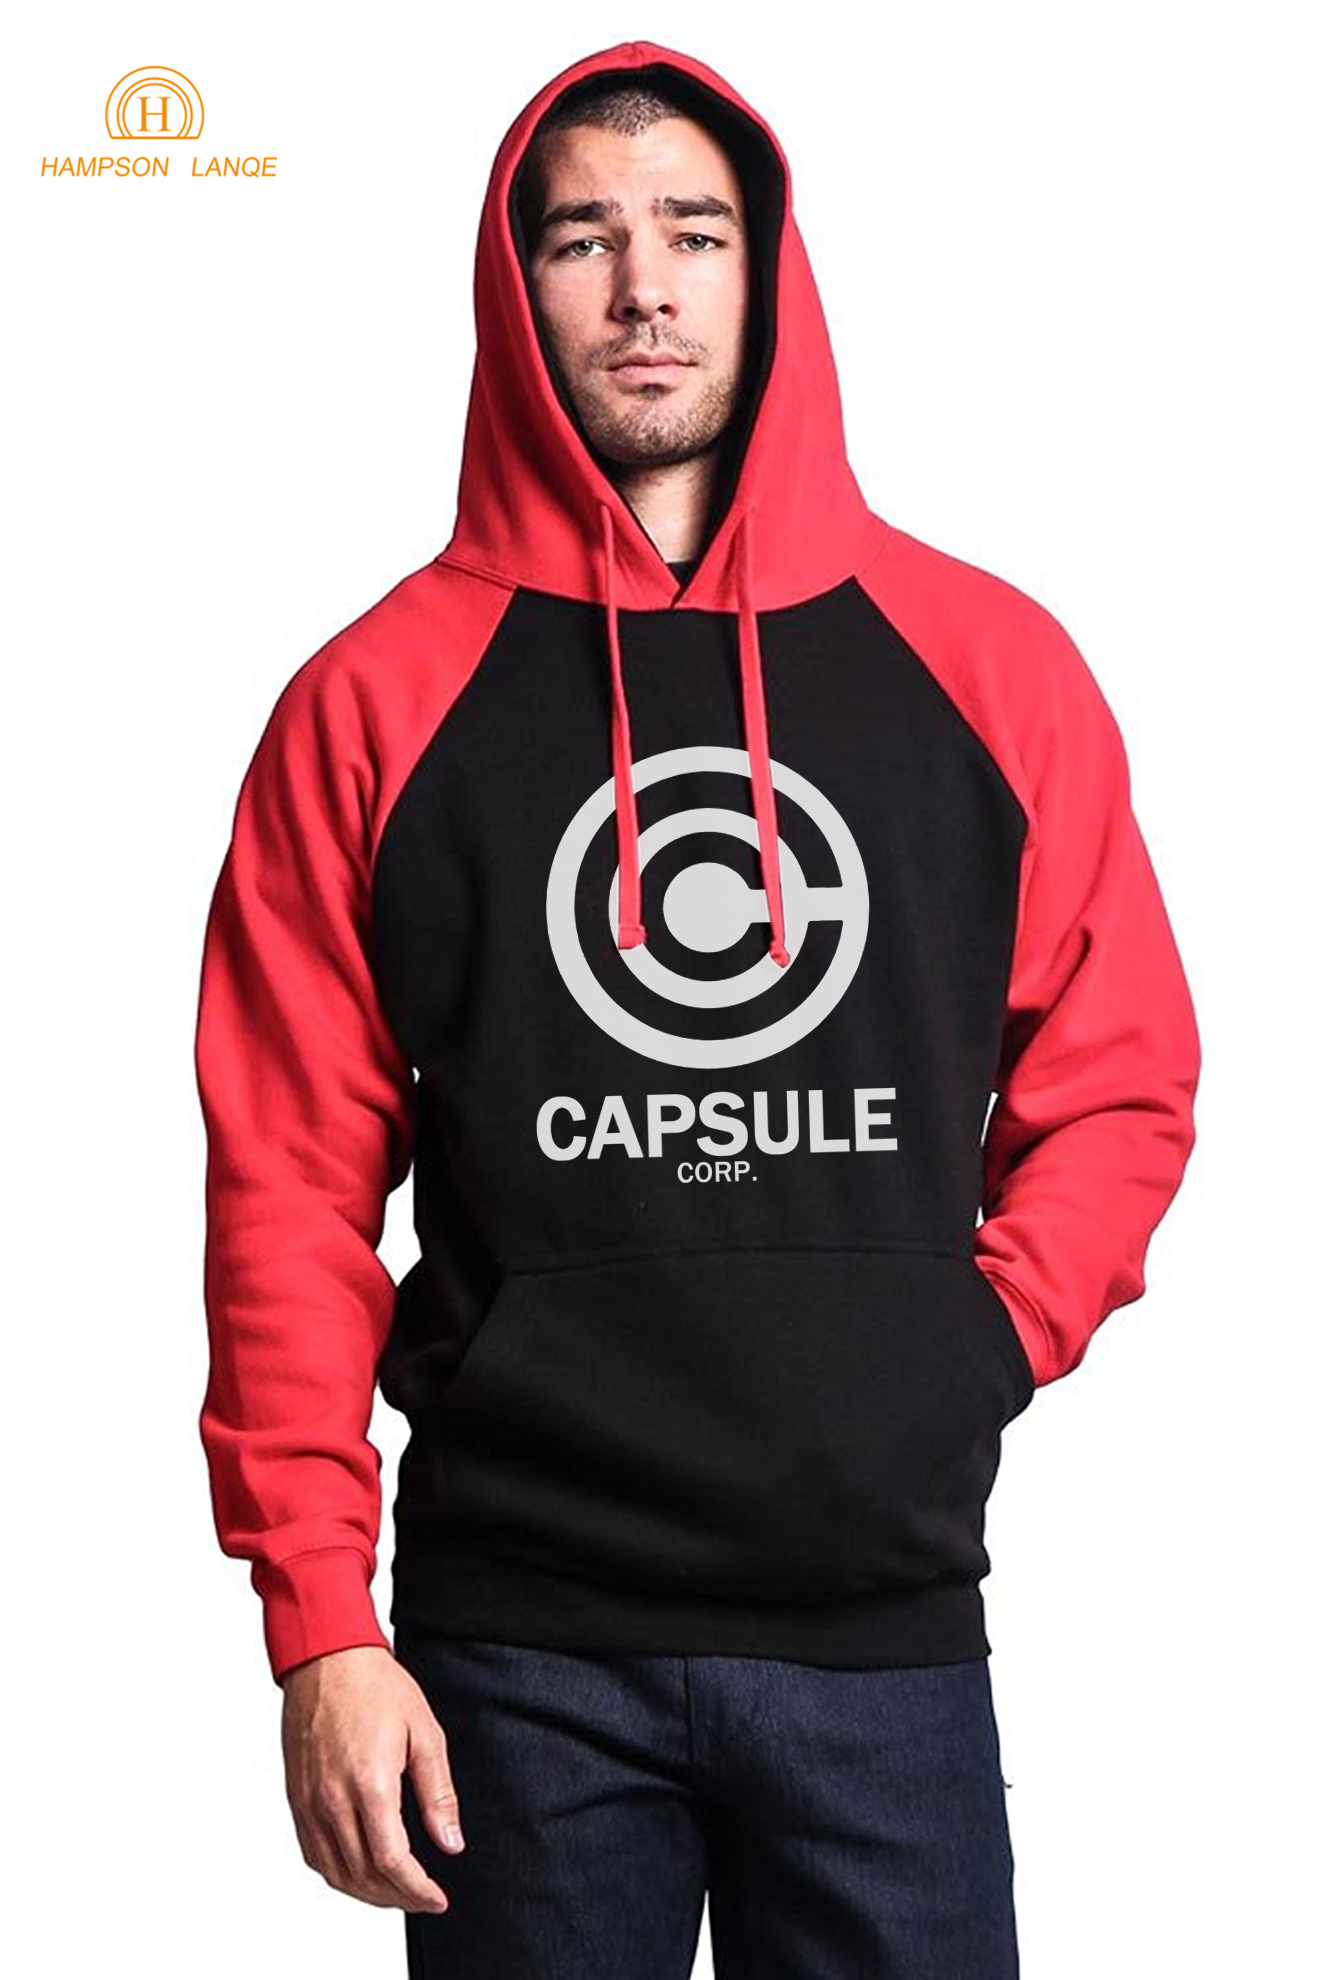 DRAGON BALL Z Capsule corp. Hoodies